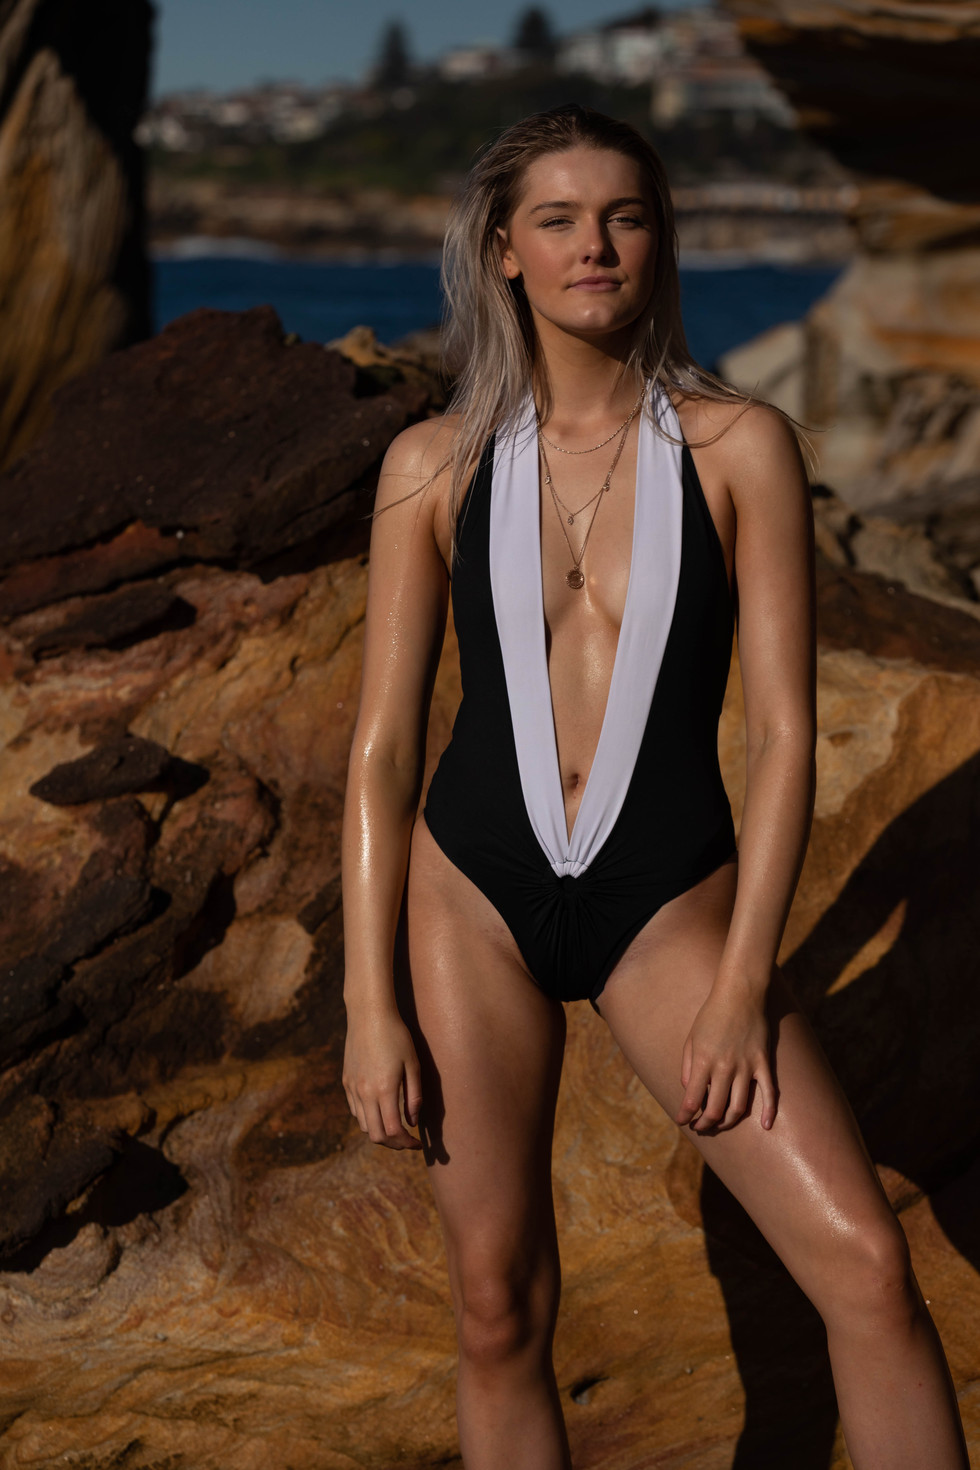 Caitlin_by_CoogeePhotography-2219.jpg